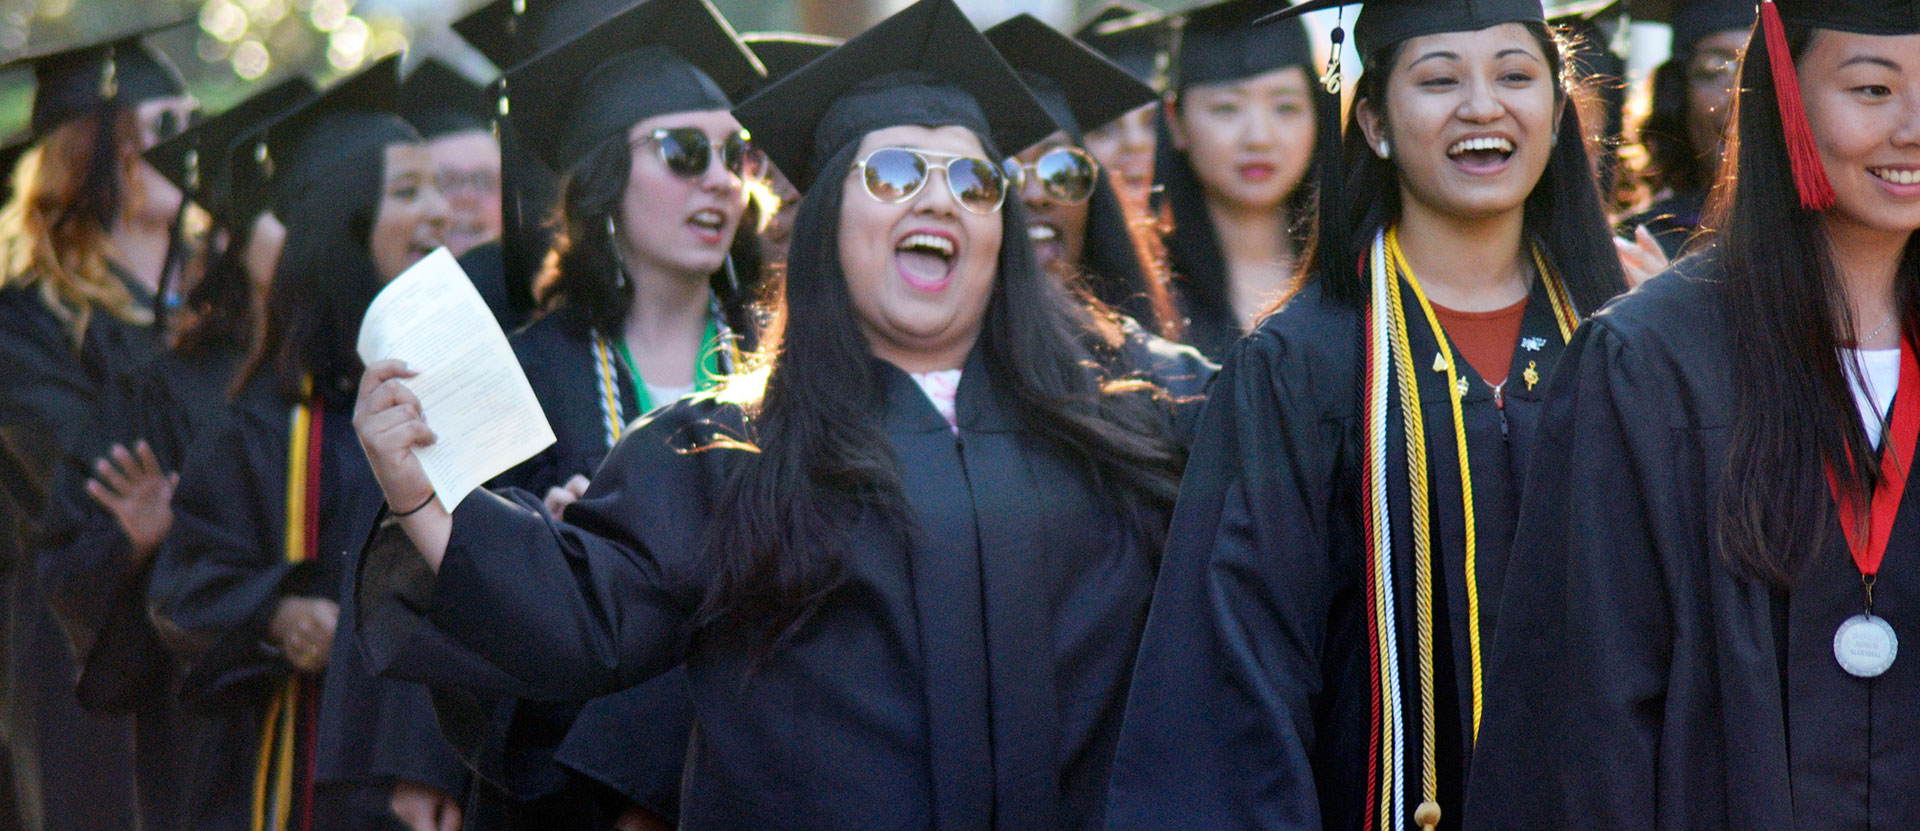 Students cheer in graduation gowns while walking to the church in downtown macon